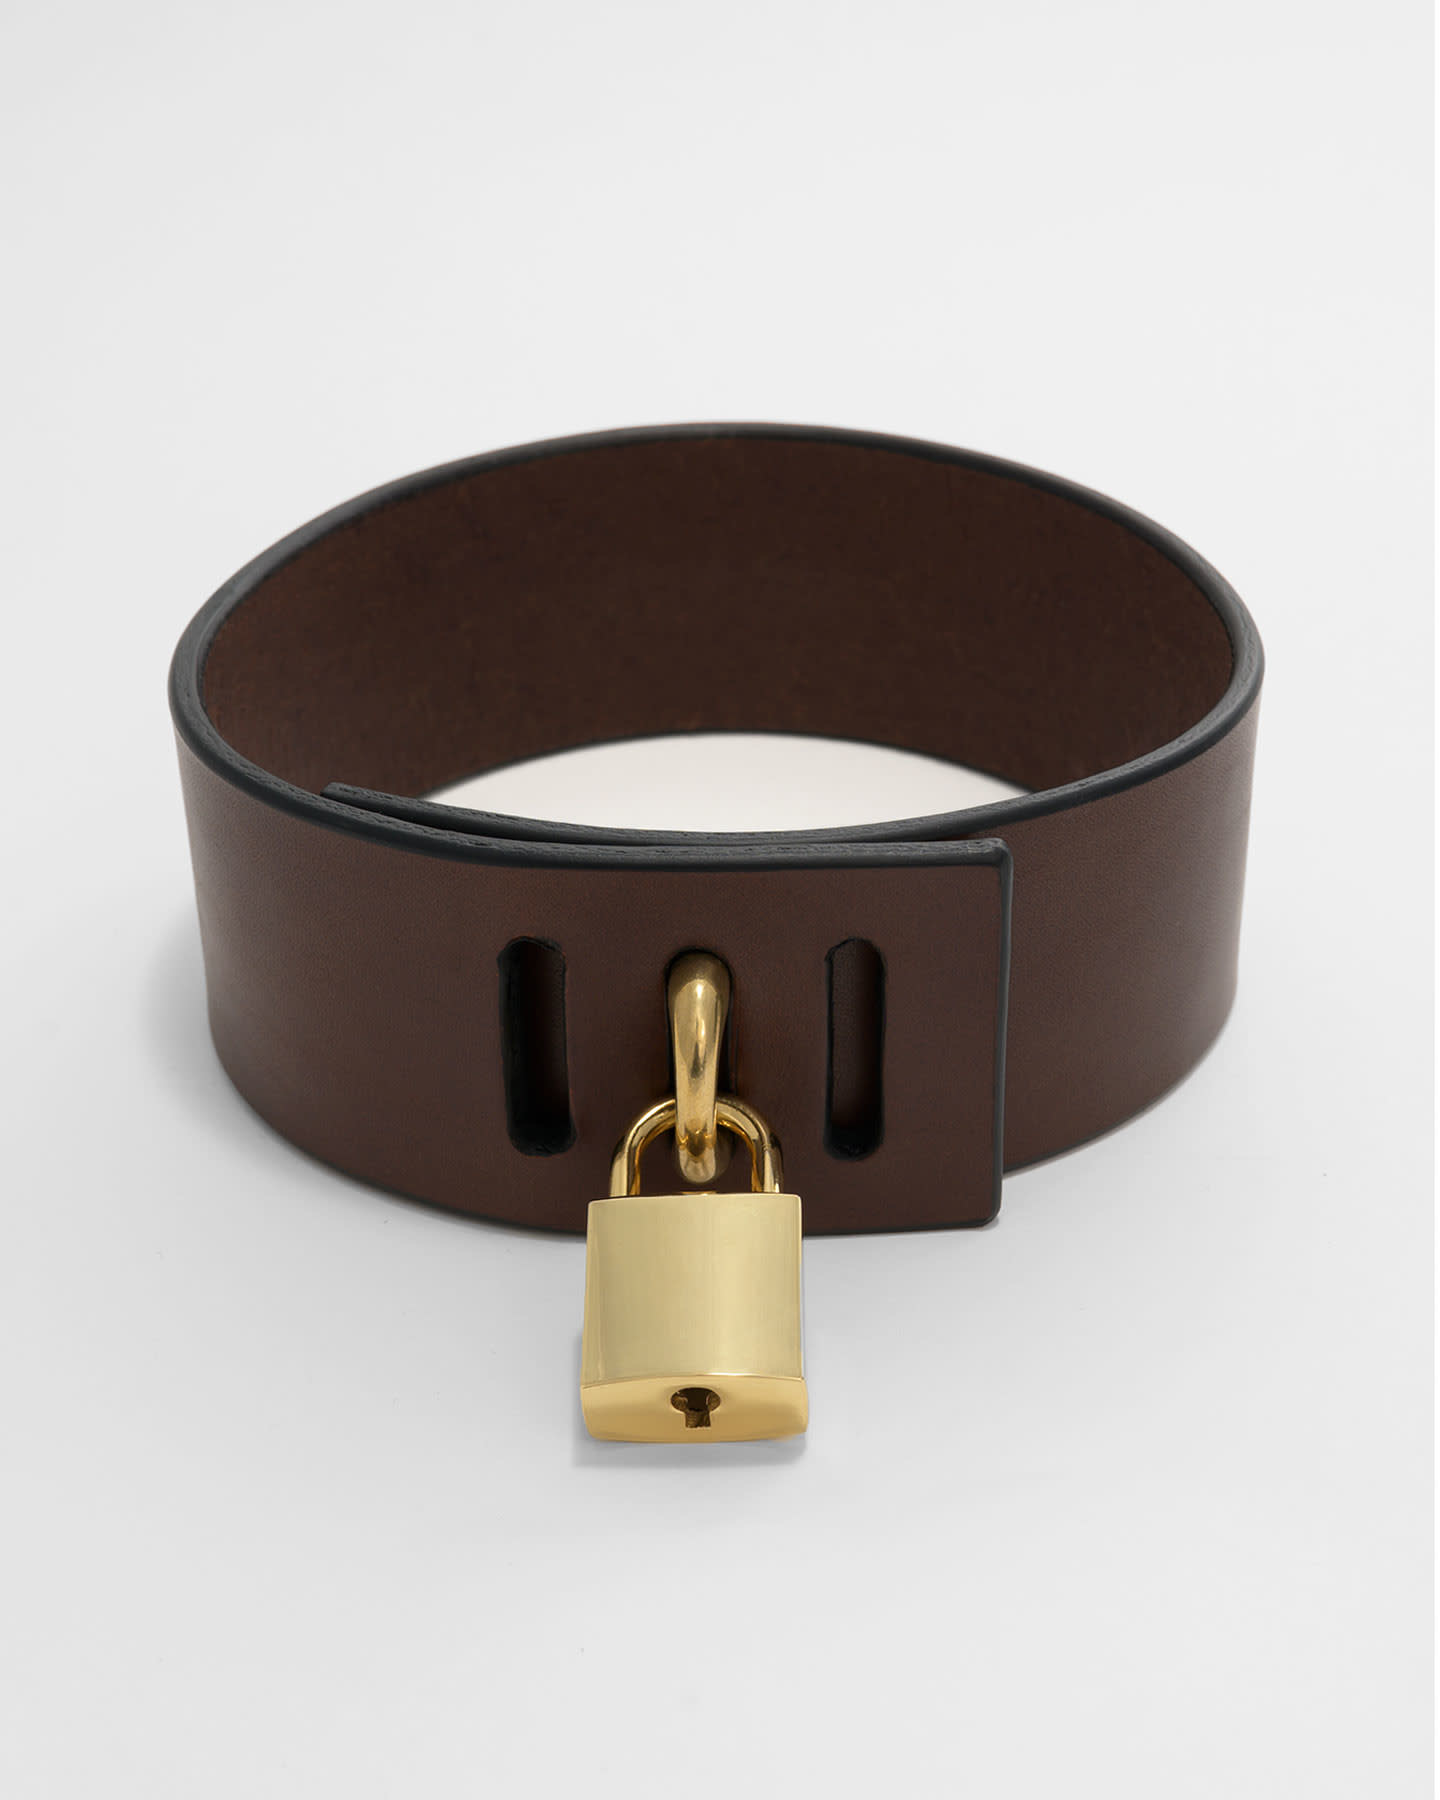 PADLOCK COLLAR - BROWN/GOLD